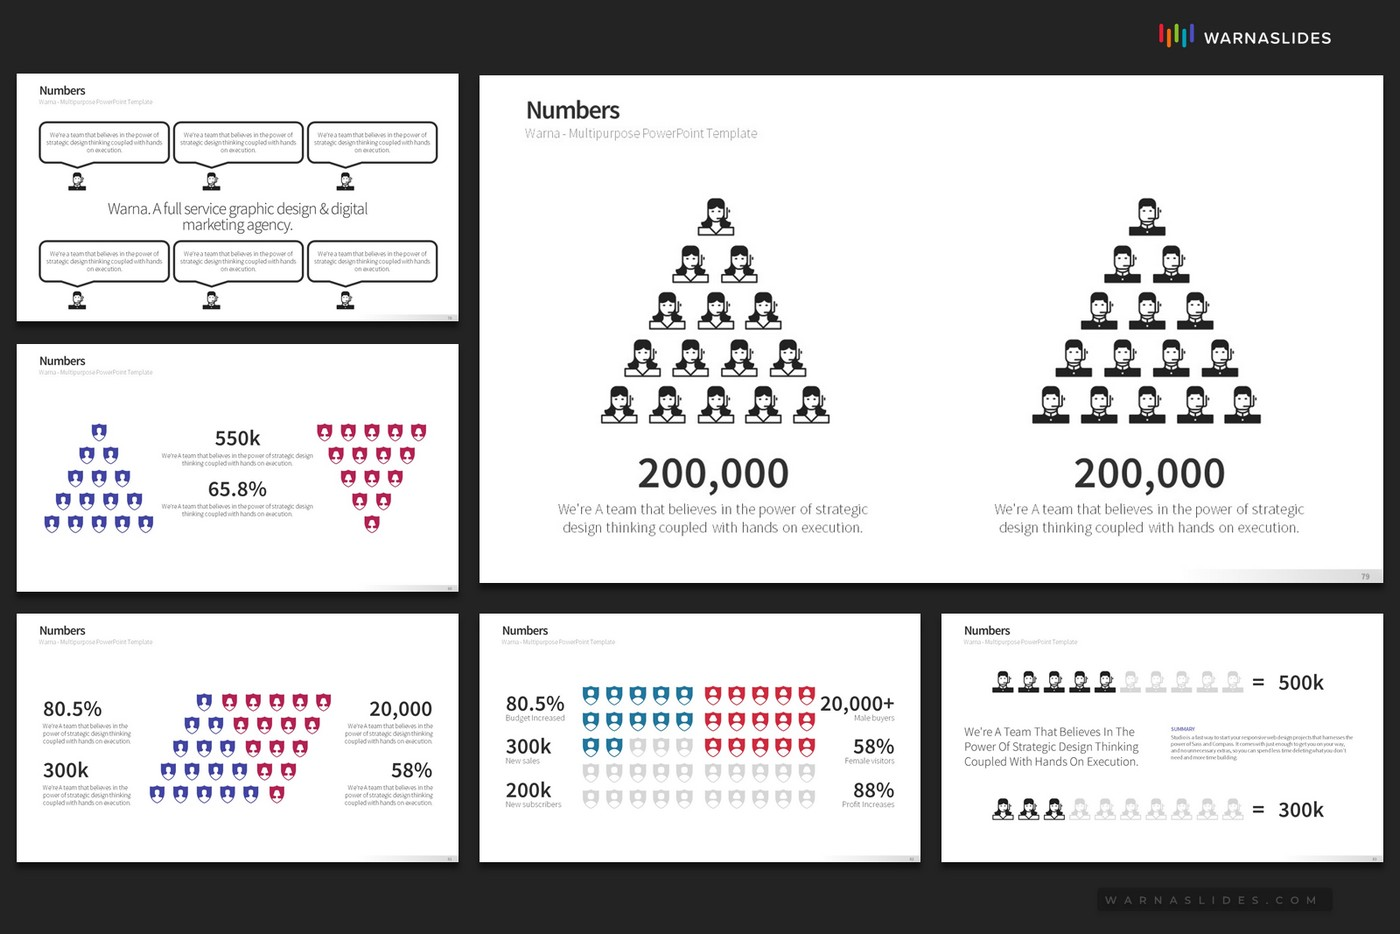 Data-Infographic-Demographic-PowerPoint-Template-for-Business-Pitch-Deck-Professional-Creative-PowerPoint-Icons-017